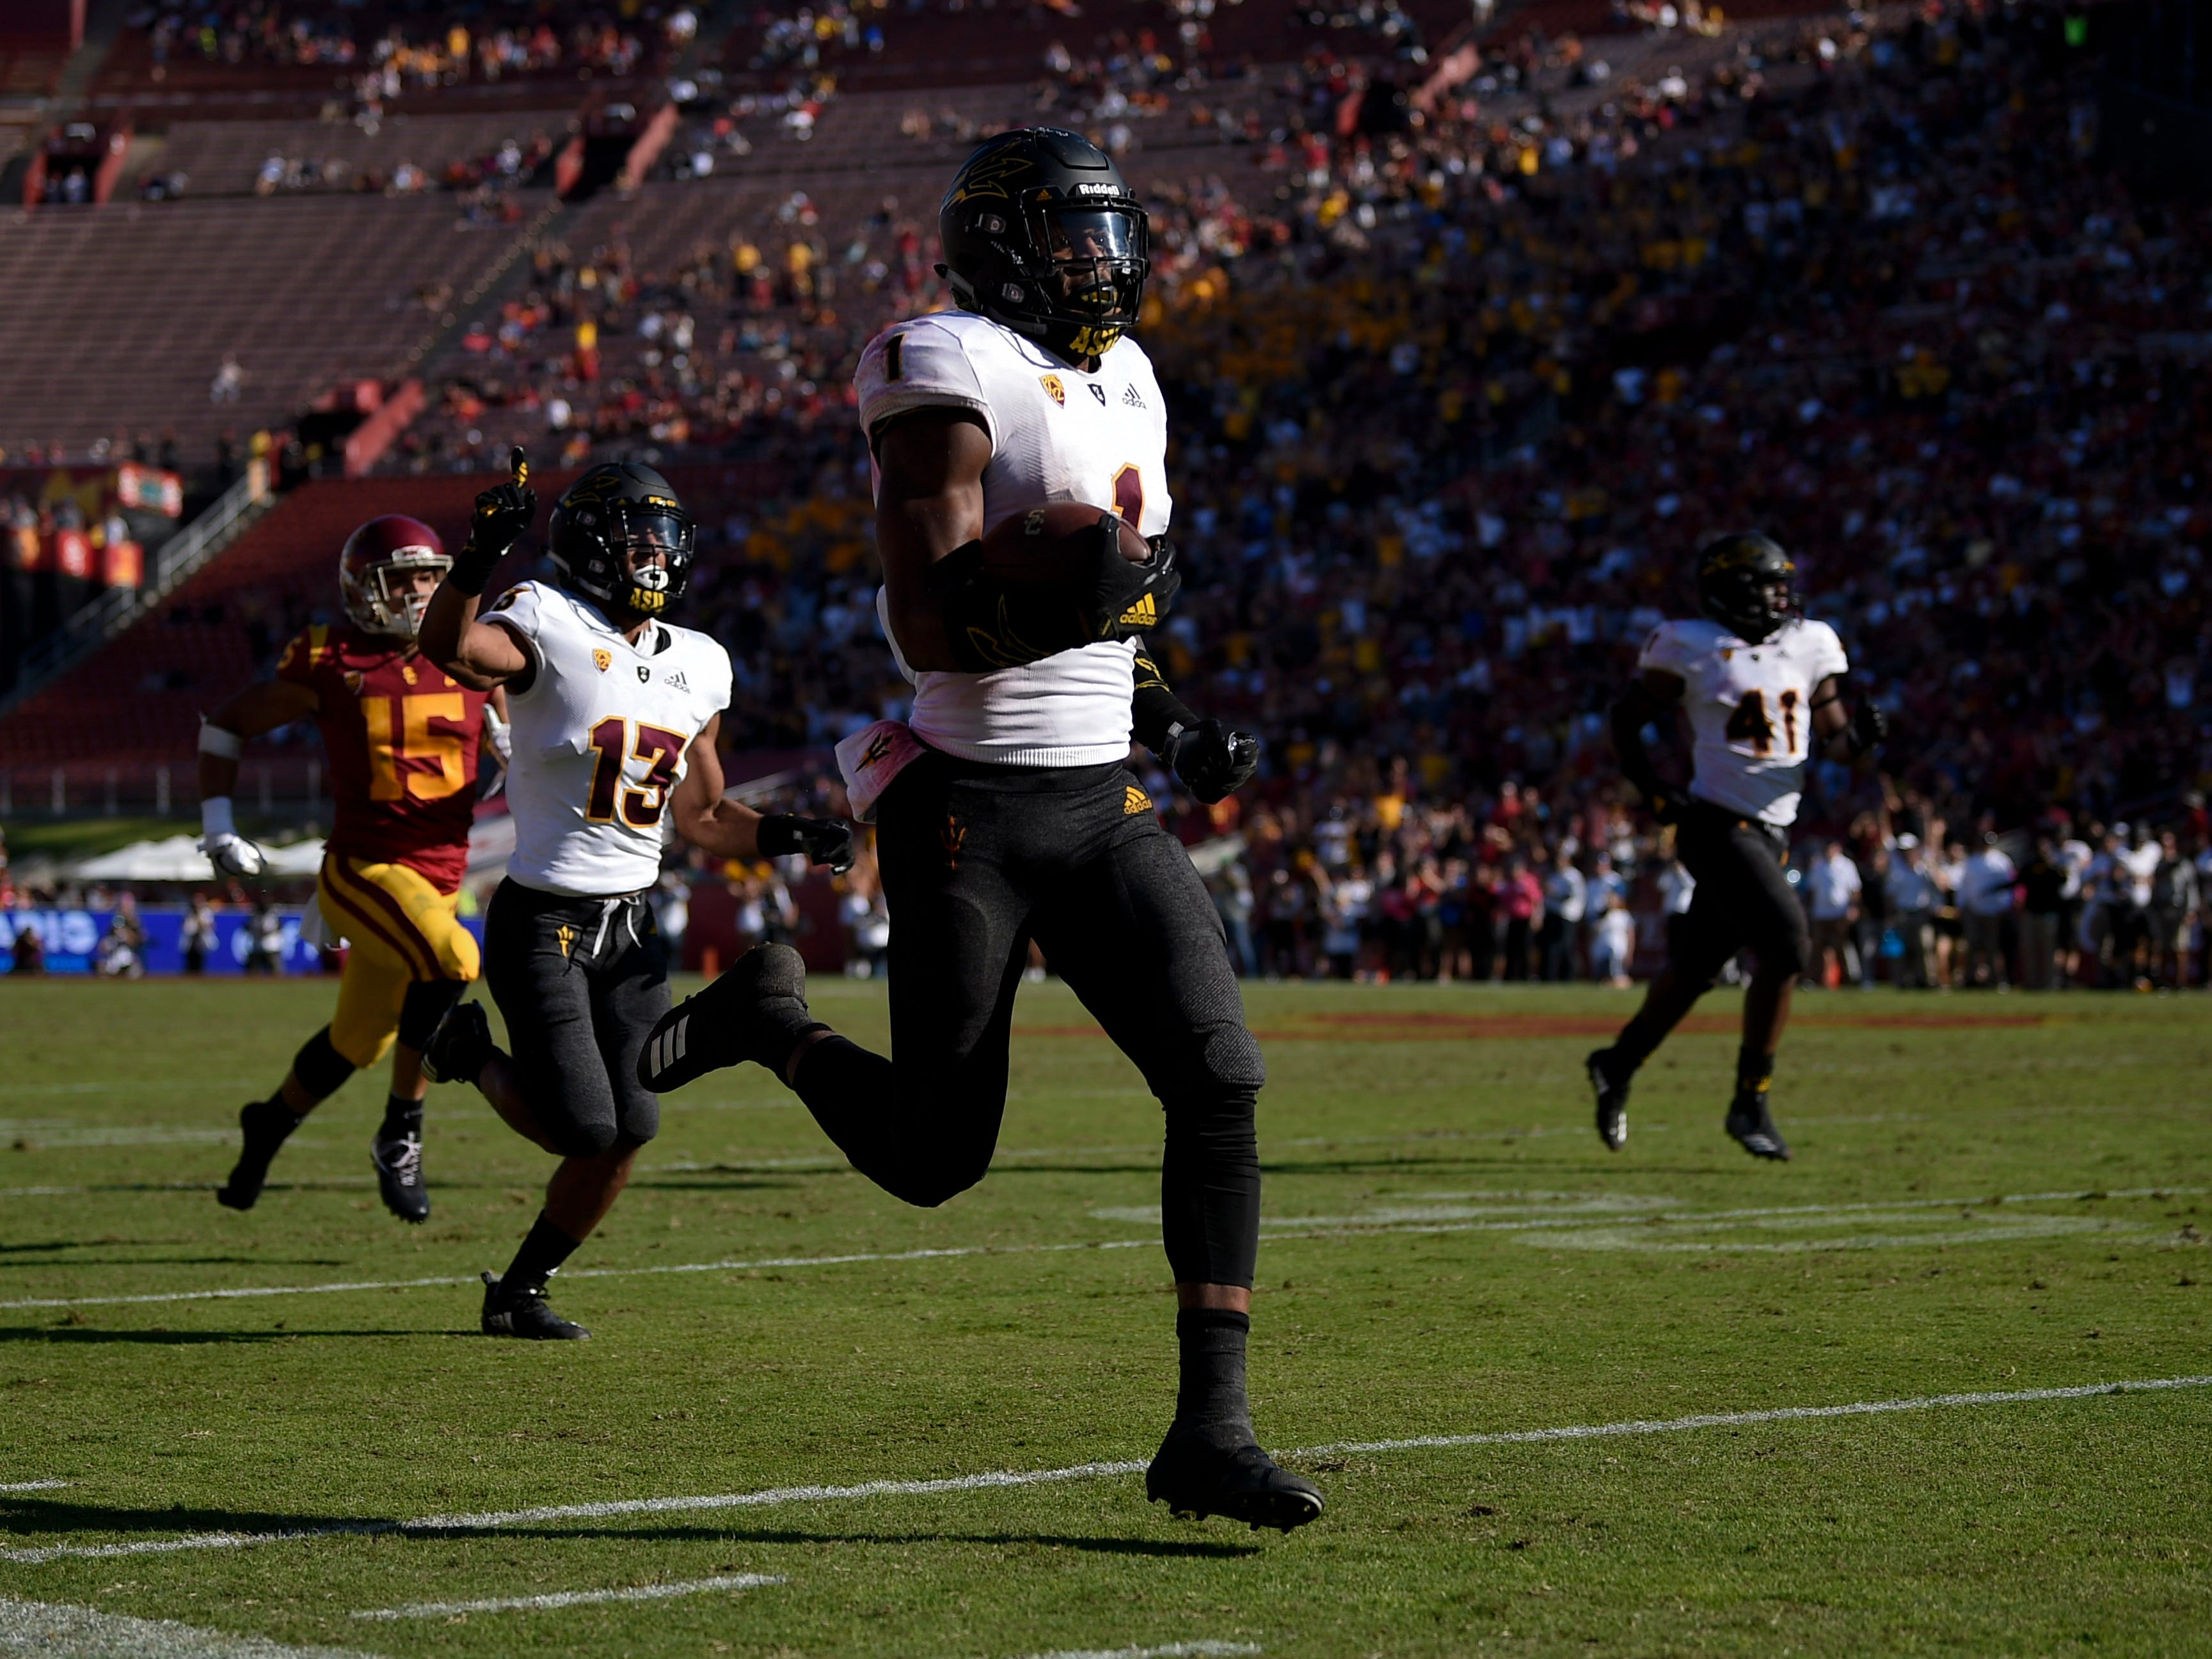 Oct 27, 2018; Los Angeles, CA, USA; Arizona State Sun Devils wide receiver N'Keal Harry (1) runs a punt return for a touchdown during the second half against the Southern California Trojans at Los Angeles Memorial Coliseum. Mandatory Credit: Kelvin Kuo-USA TODAY Sports